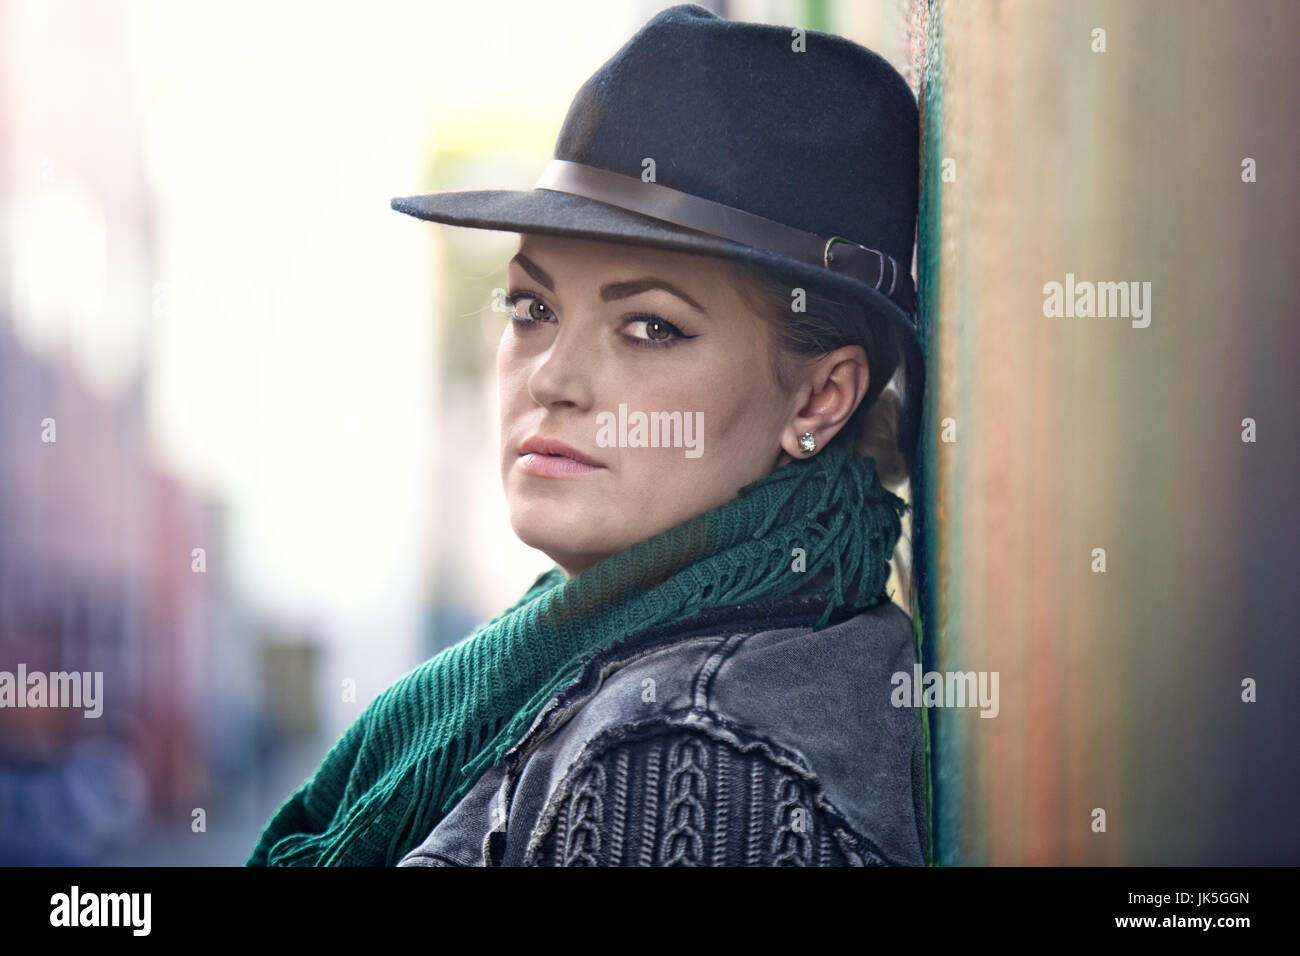 Closeup portrait of a fashionable, 30-something woman leaning against a wall - Stock Image